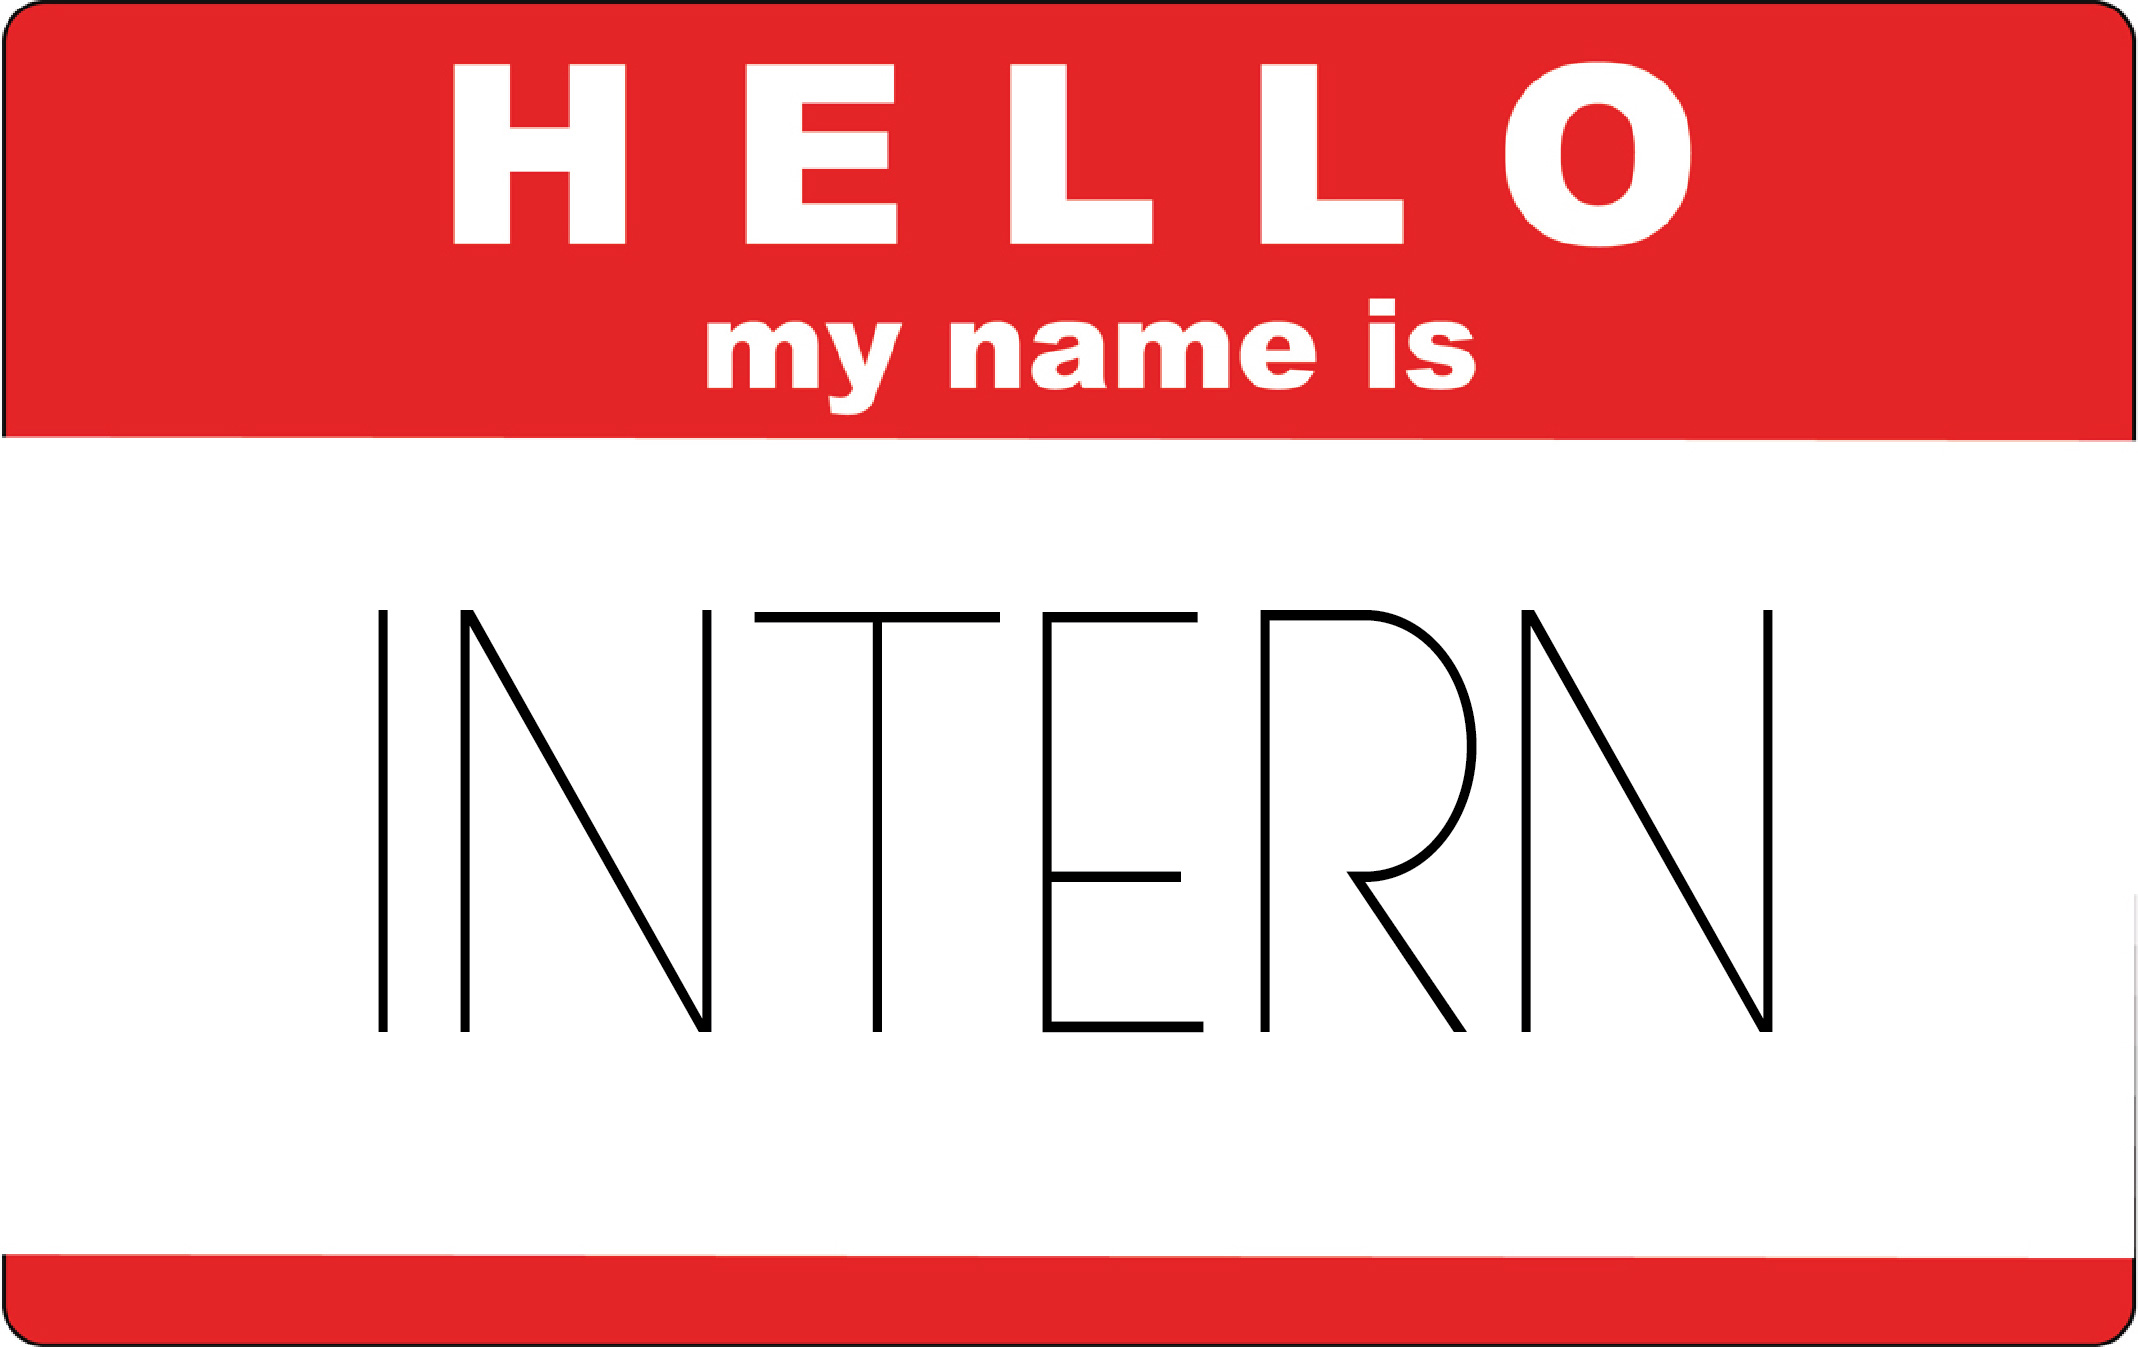 M.tech internship in Bangalore